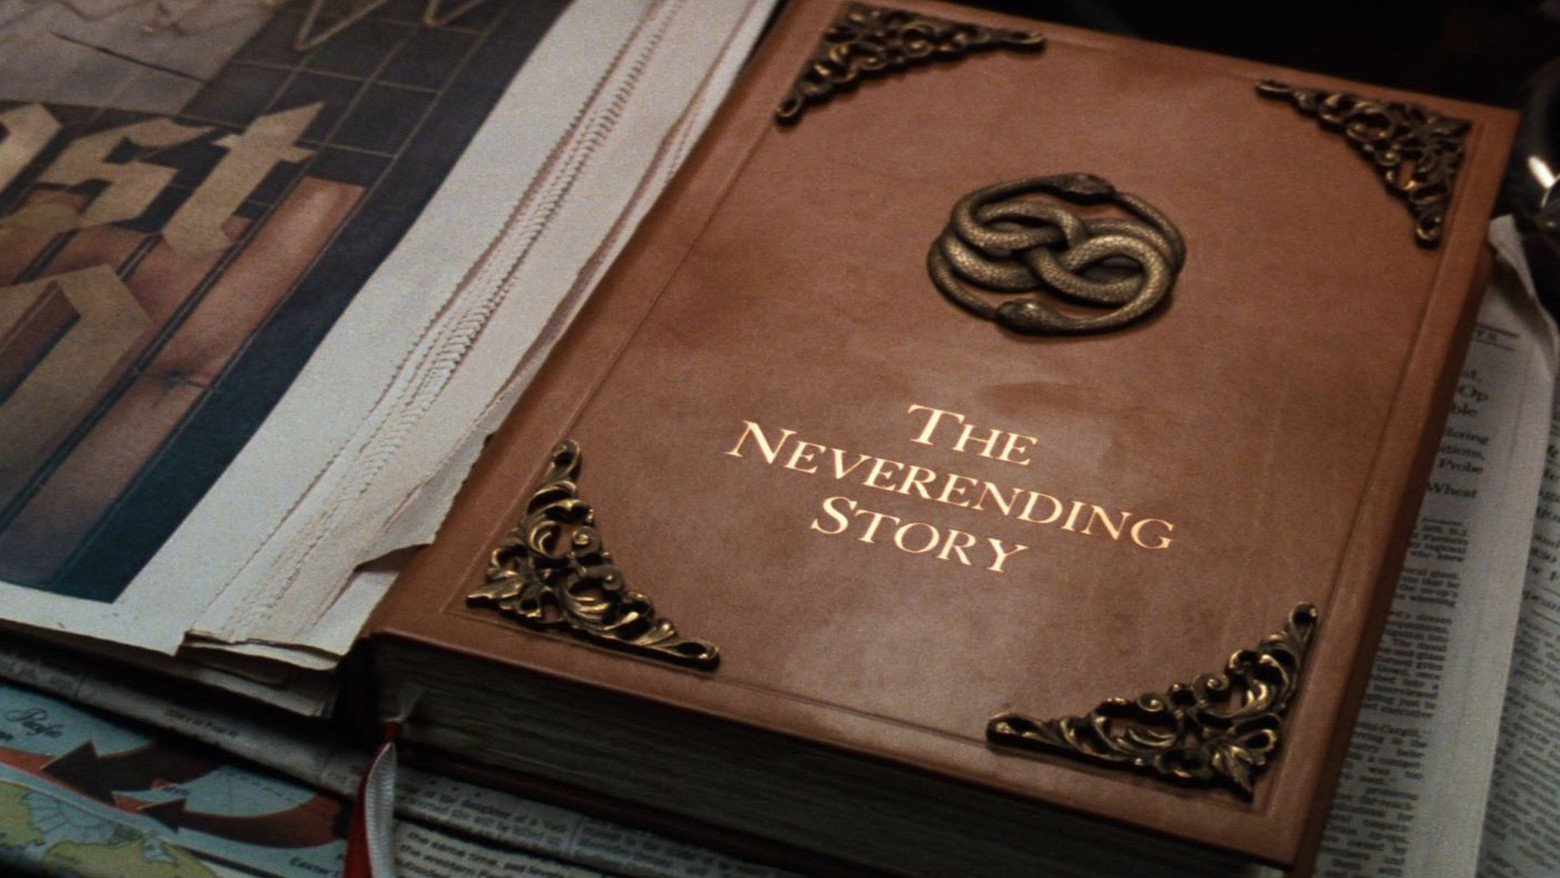 The NeverEnding Story.jpg